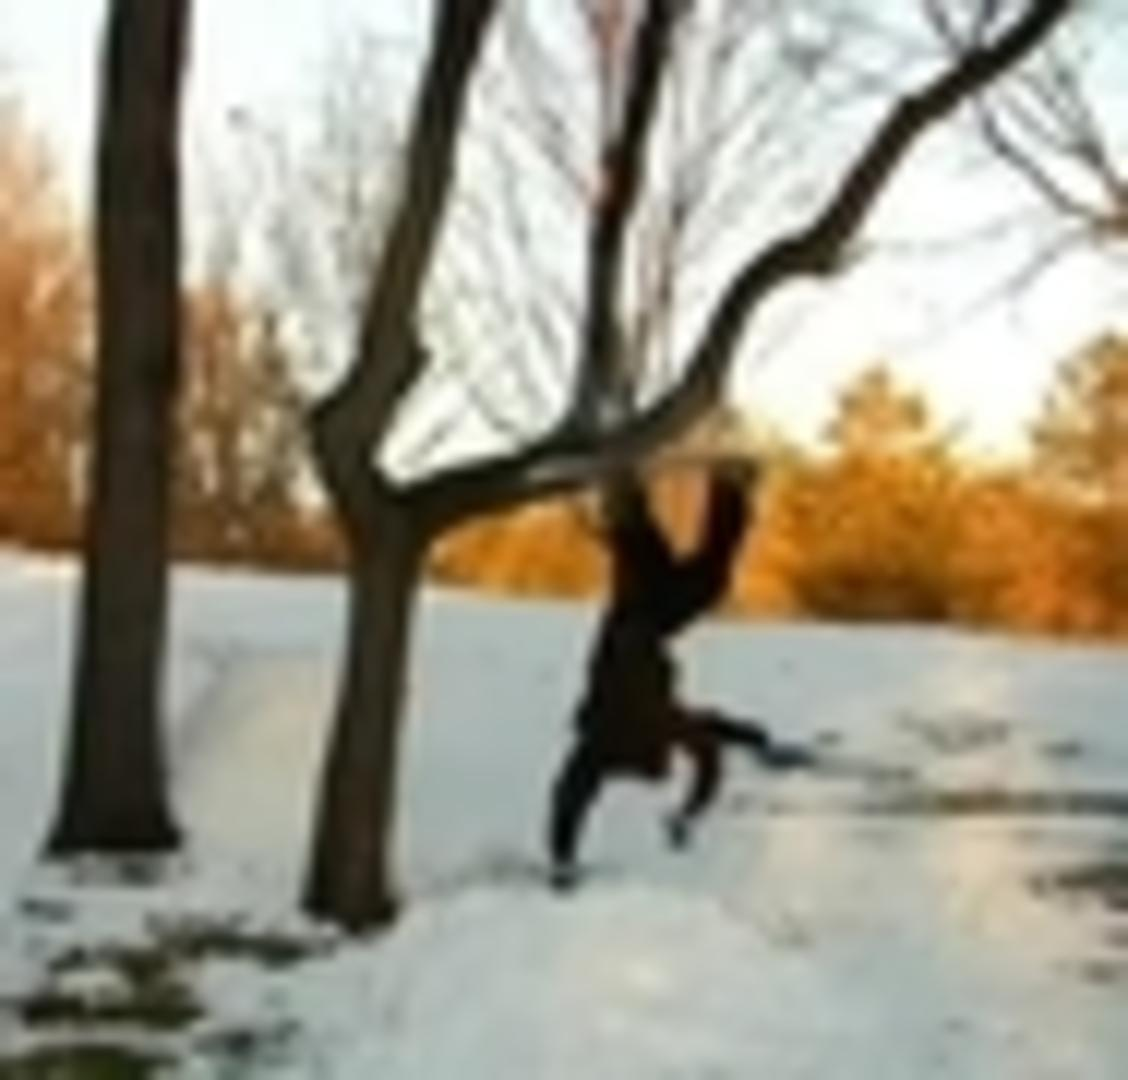 Snowboard Backyard Jump Through Tree Fail